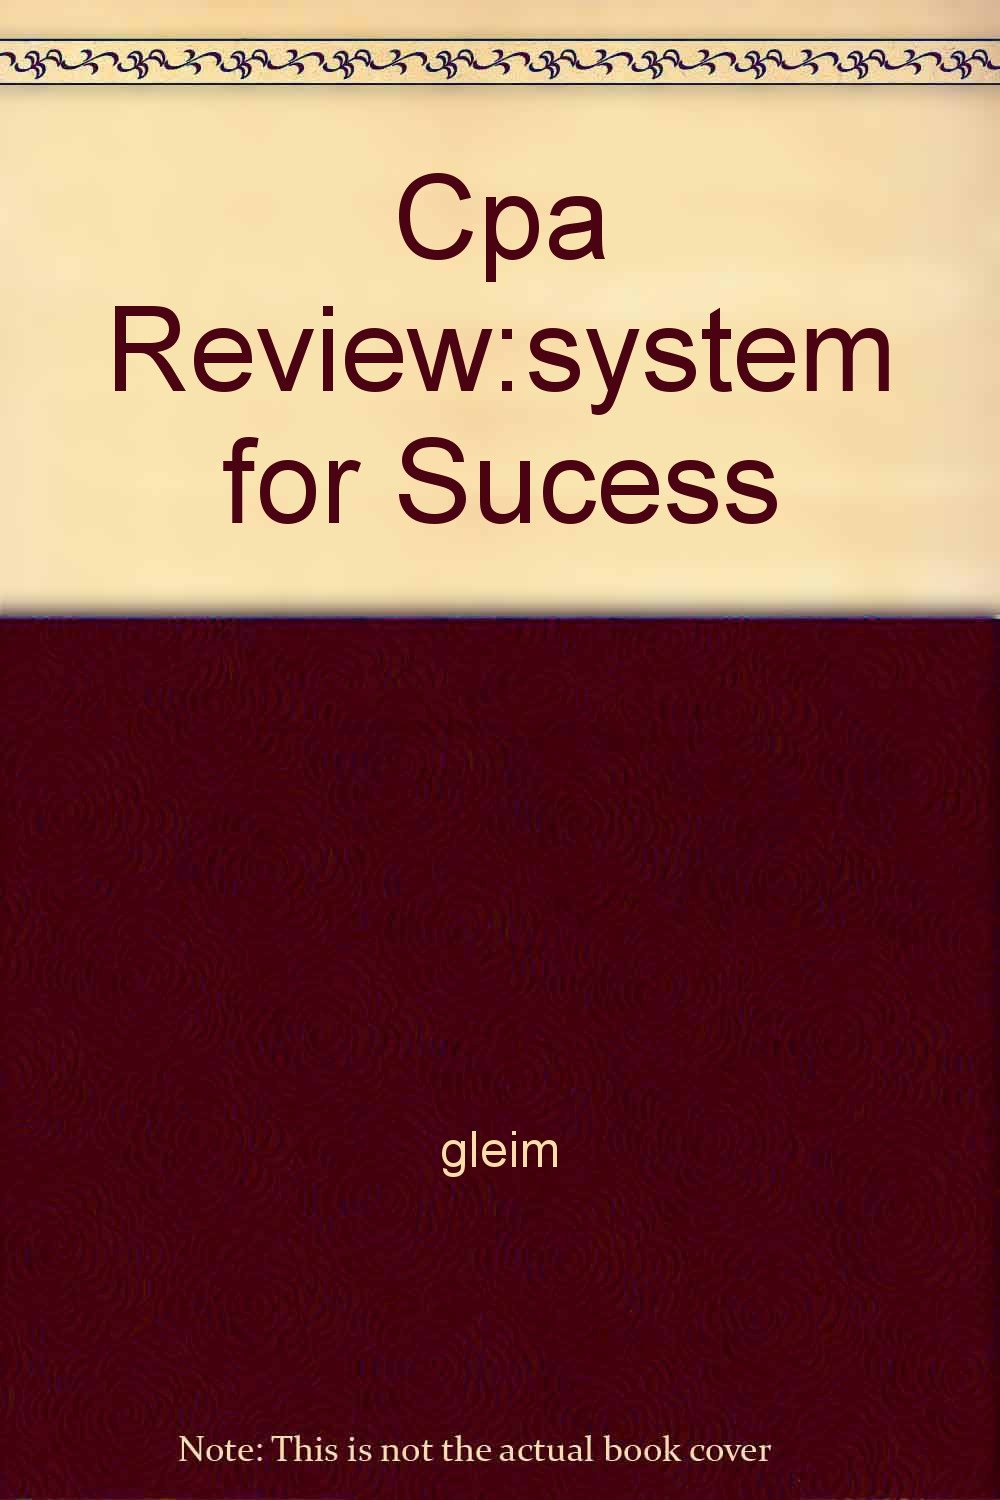 Cpa Review:system for Sucess pdf